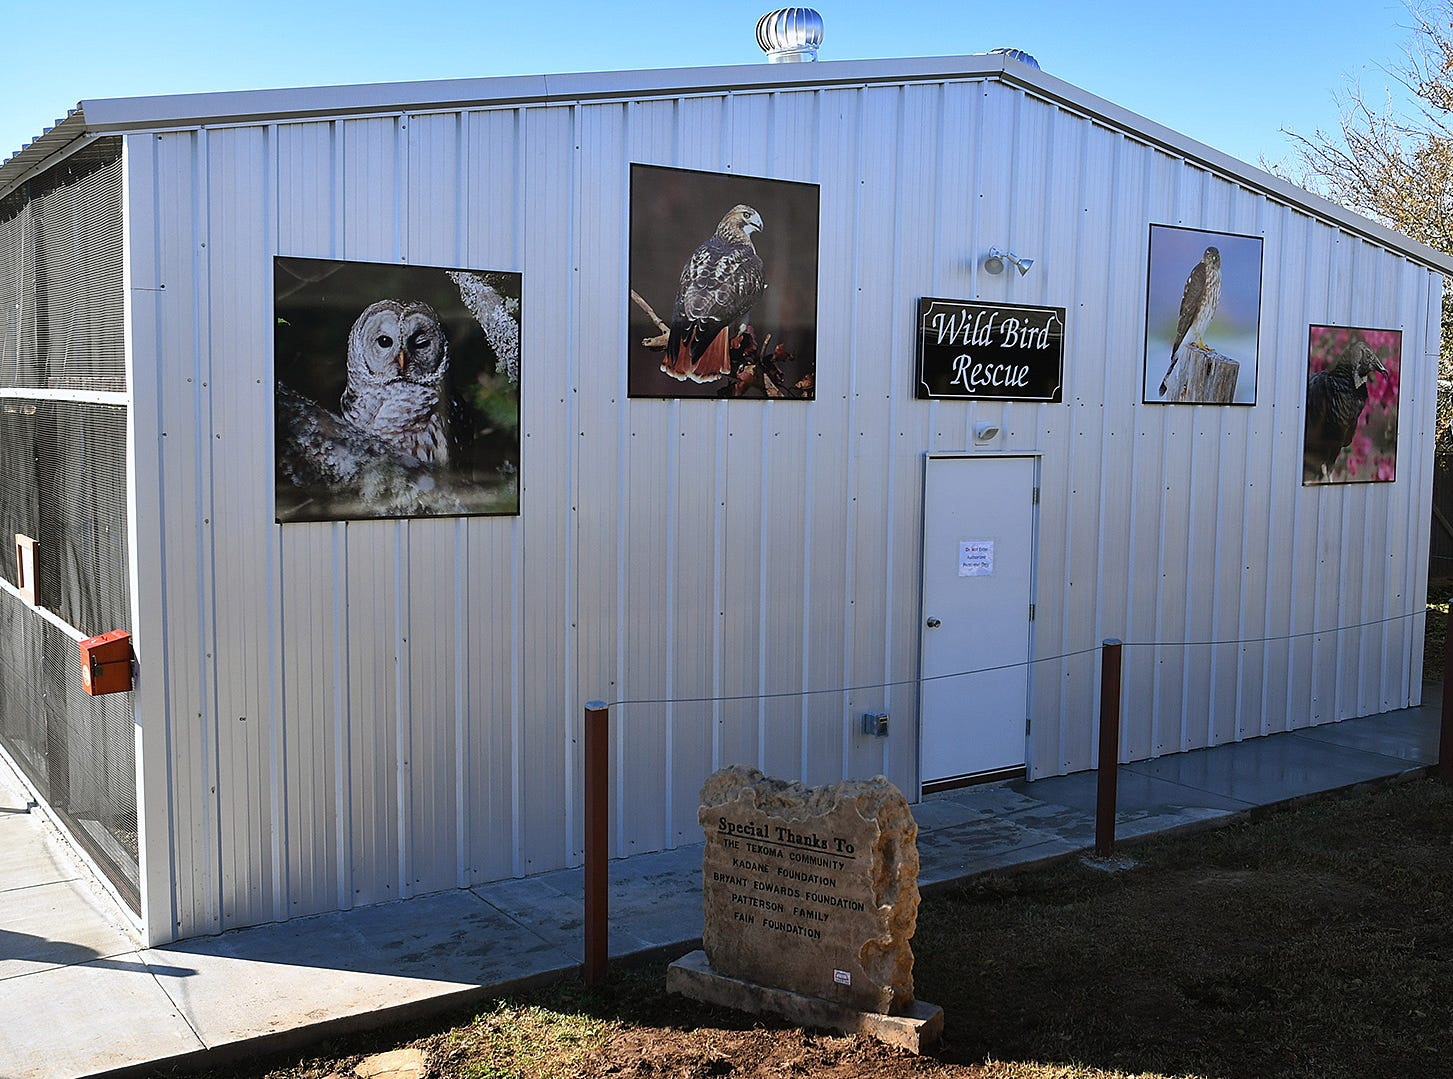 The new Exhibit and Education building opened Thursday at Wild Bird Rescue. The facility houses birds and raptors, that for various reasons, cannot be released back to the wild.